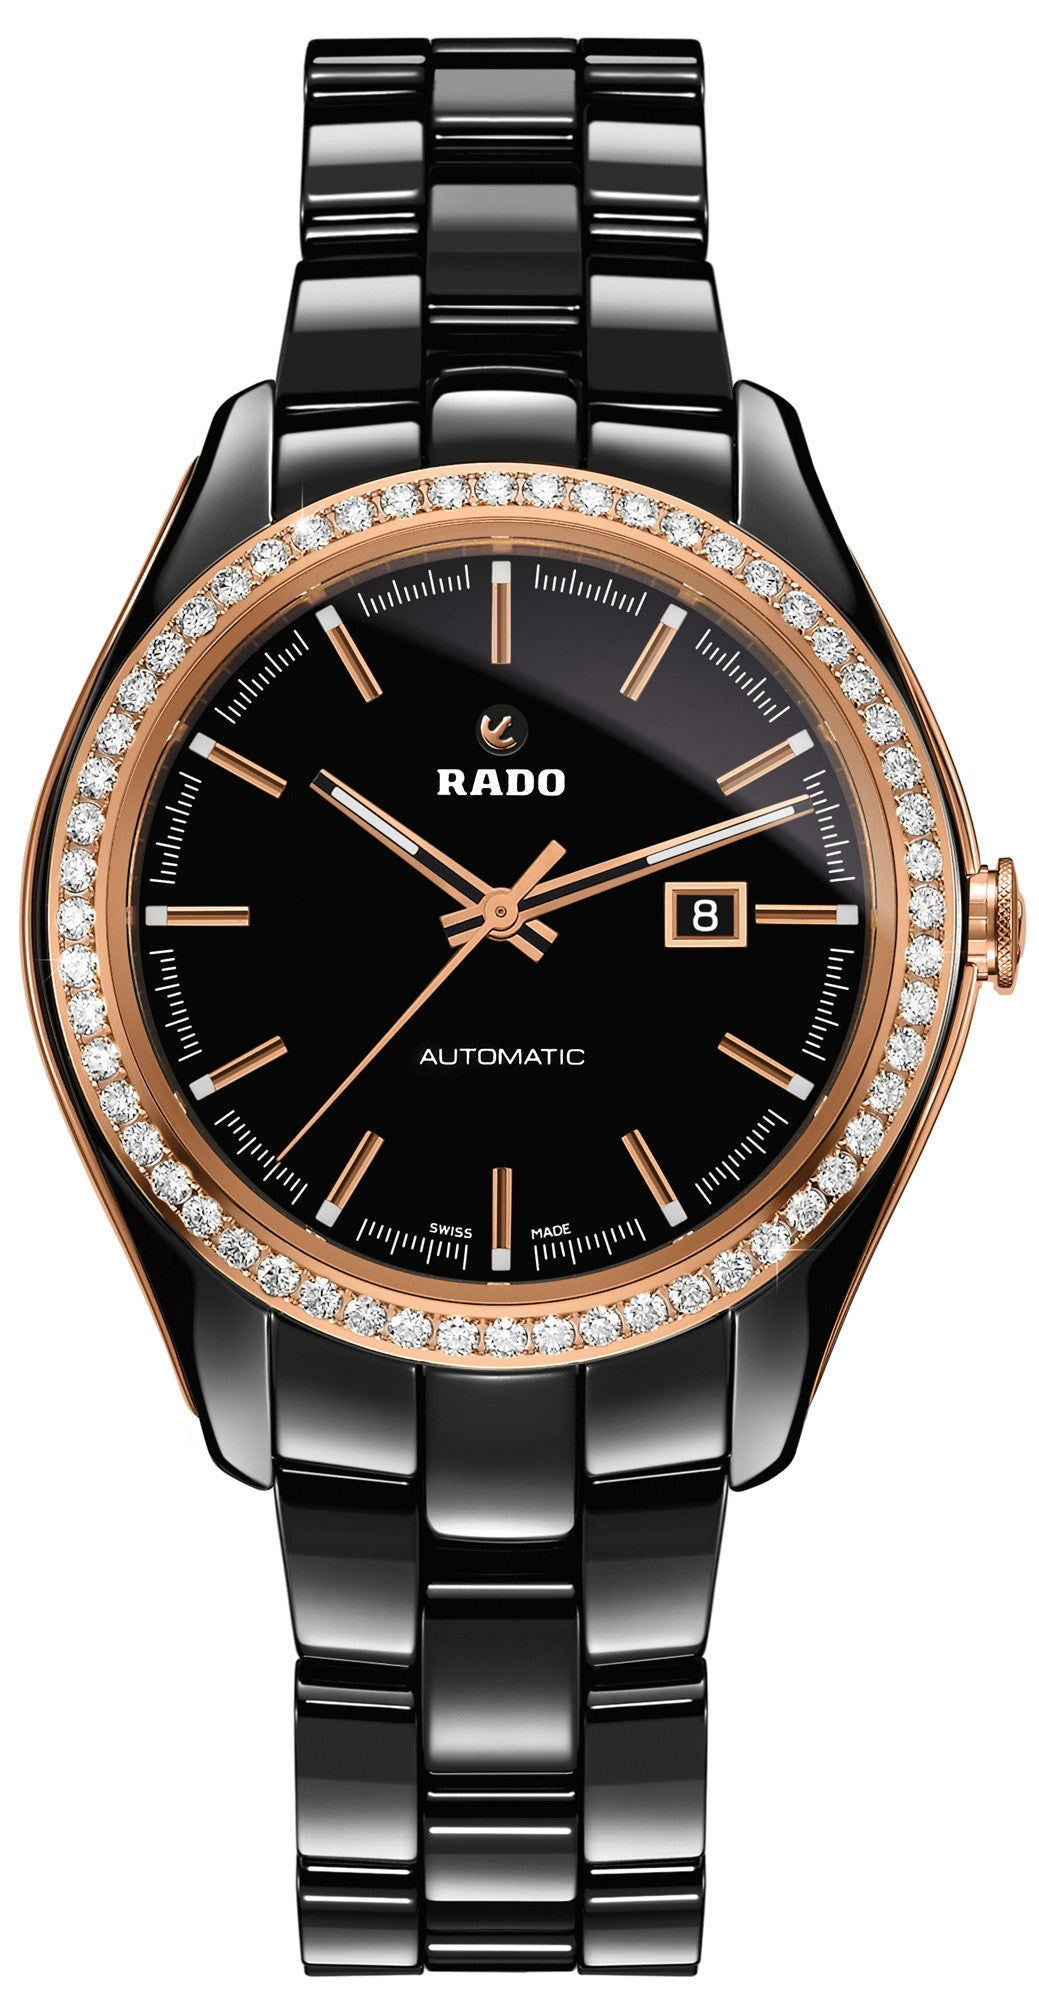 Rado Watch HyperChrome L Limited Edition